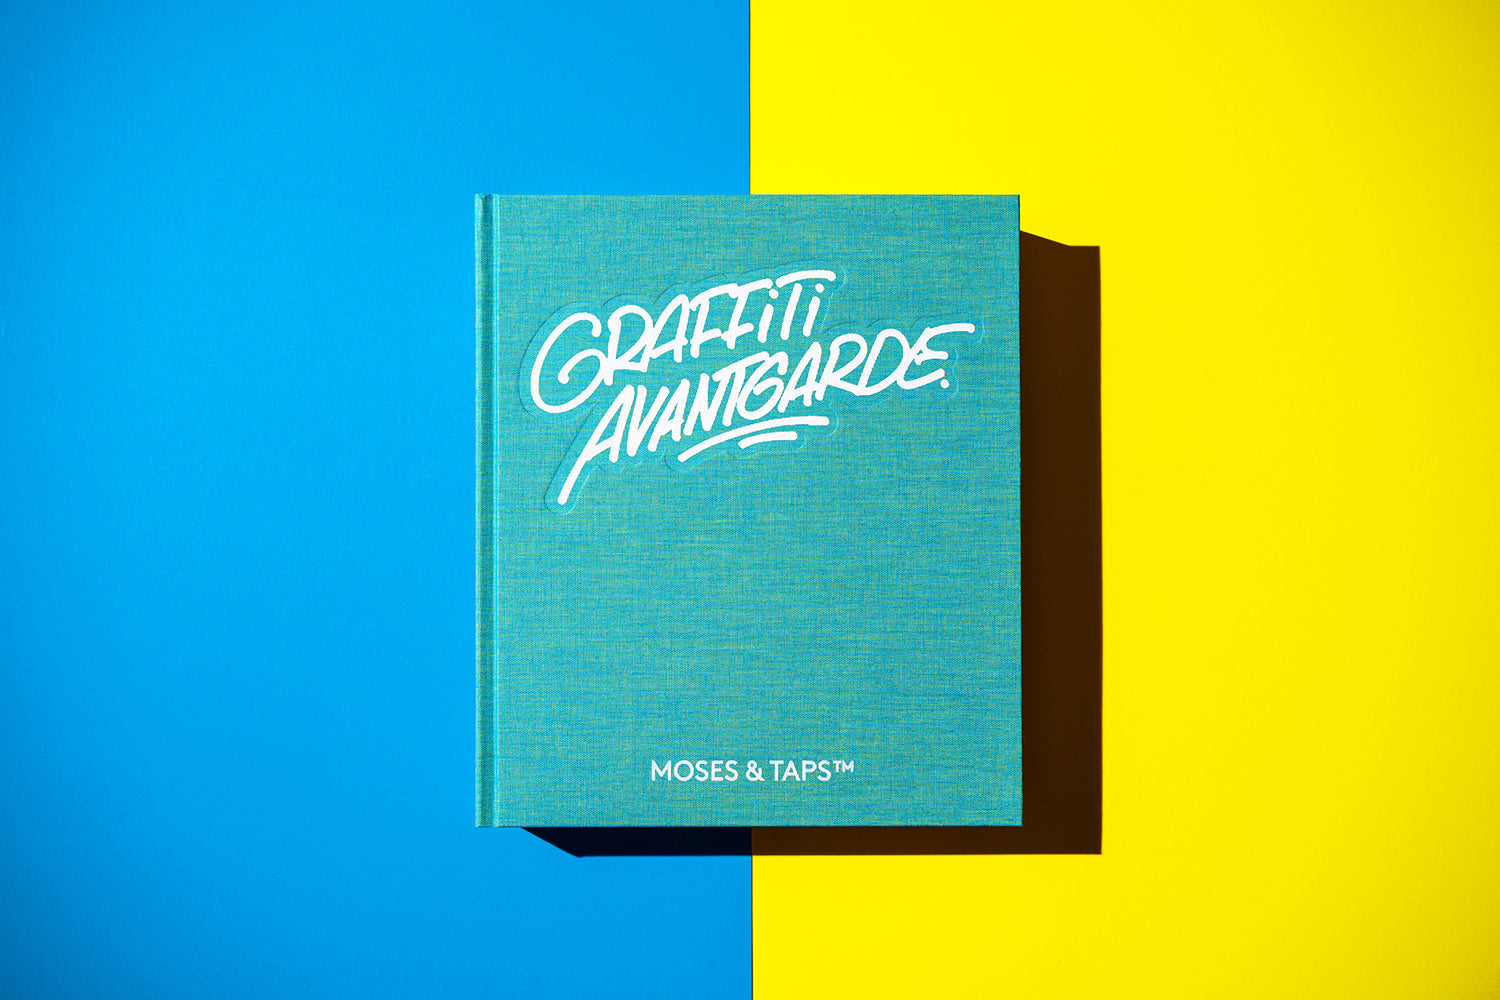 MOSES & TAPS™ - GRAFFITI AVANTGARDE™